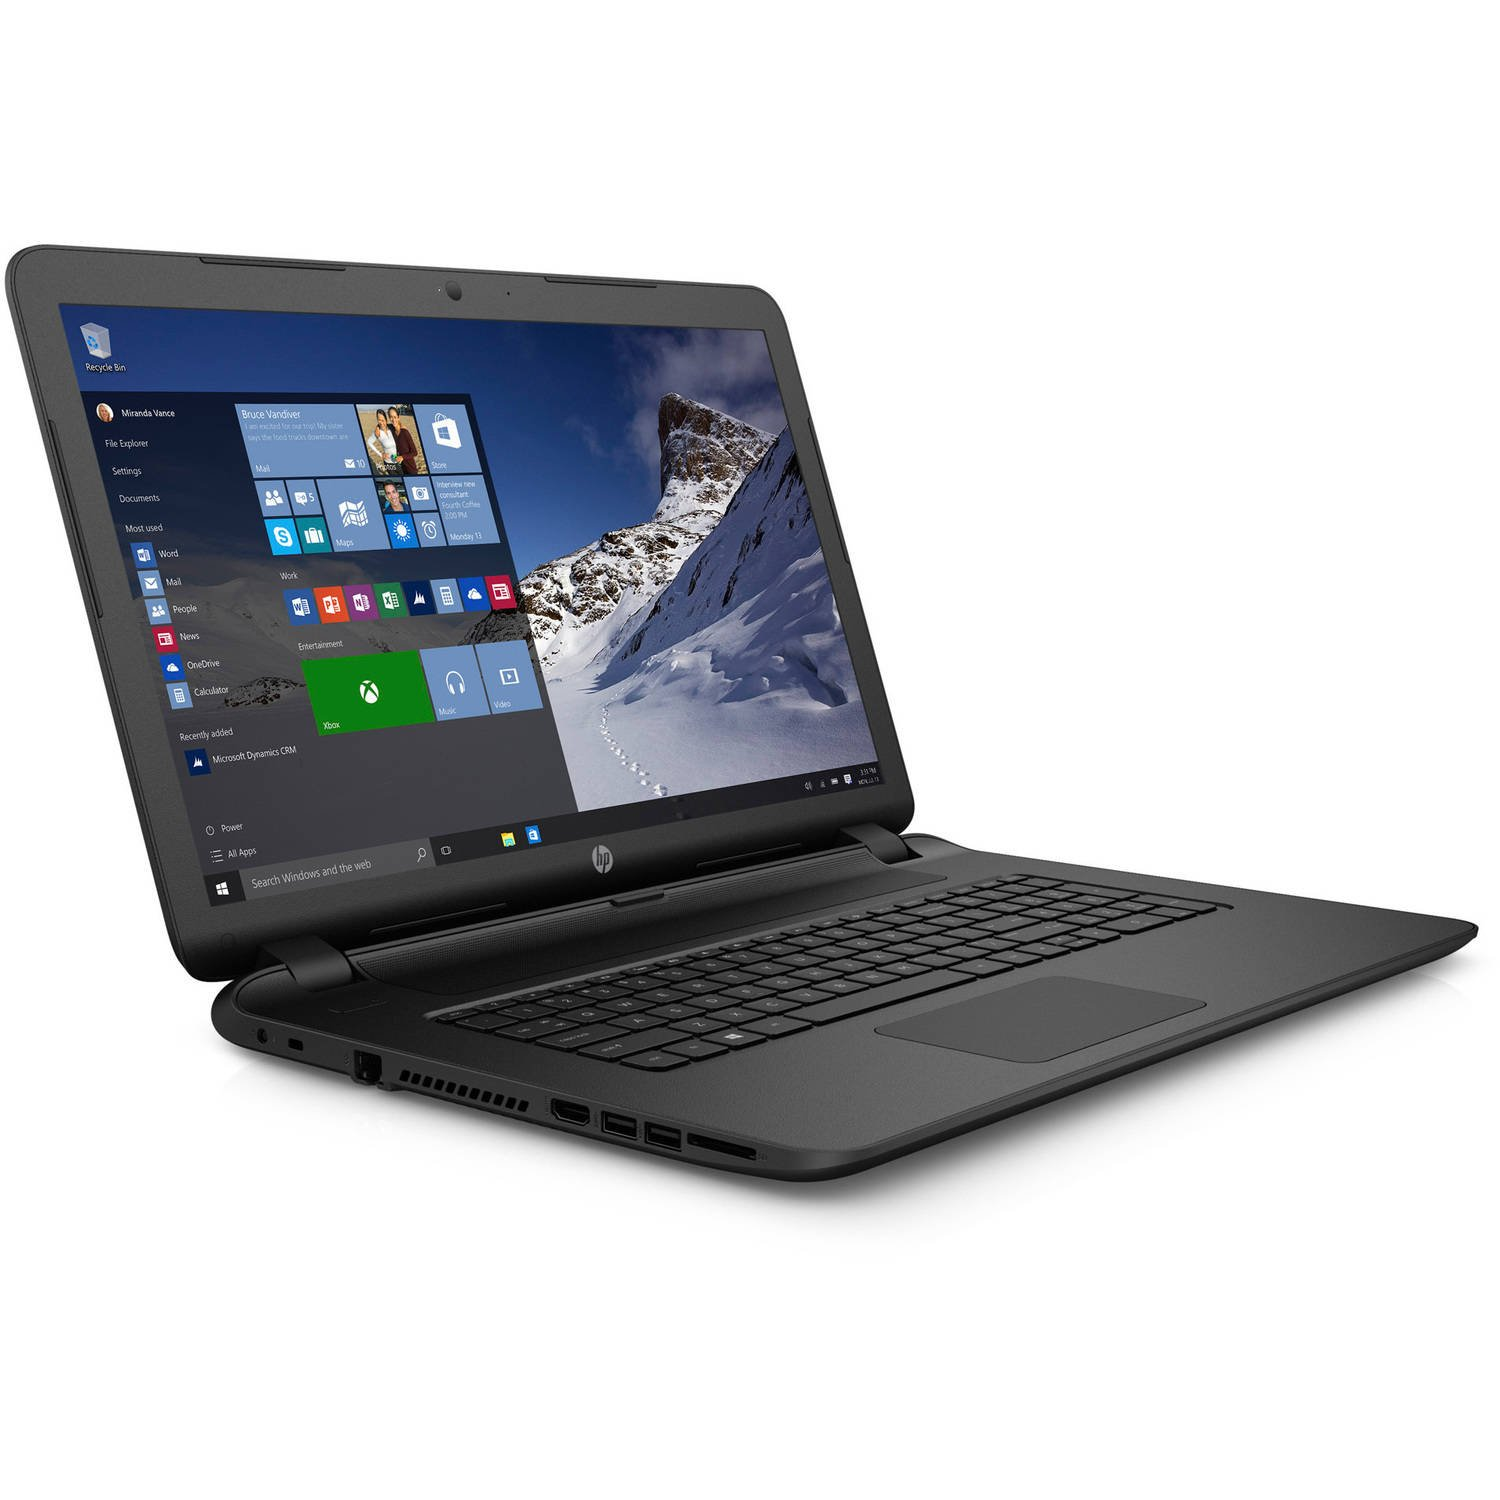 Amazon.com: HP Pavilion 17 Flagship HD+ 17.3-inch Laptop (1600 x 900),  Intel Core i5-4210u Processor, 4GB RAM, 1TB HDD, Intel HD Graphics 4400,  DVD, HDMI, ...